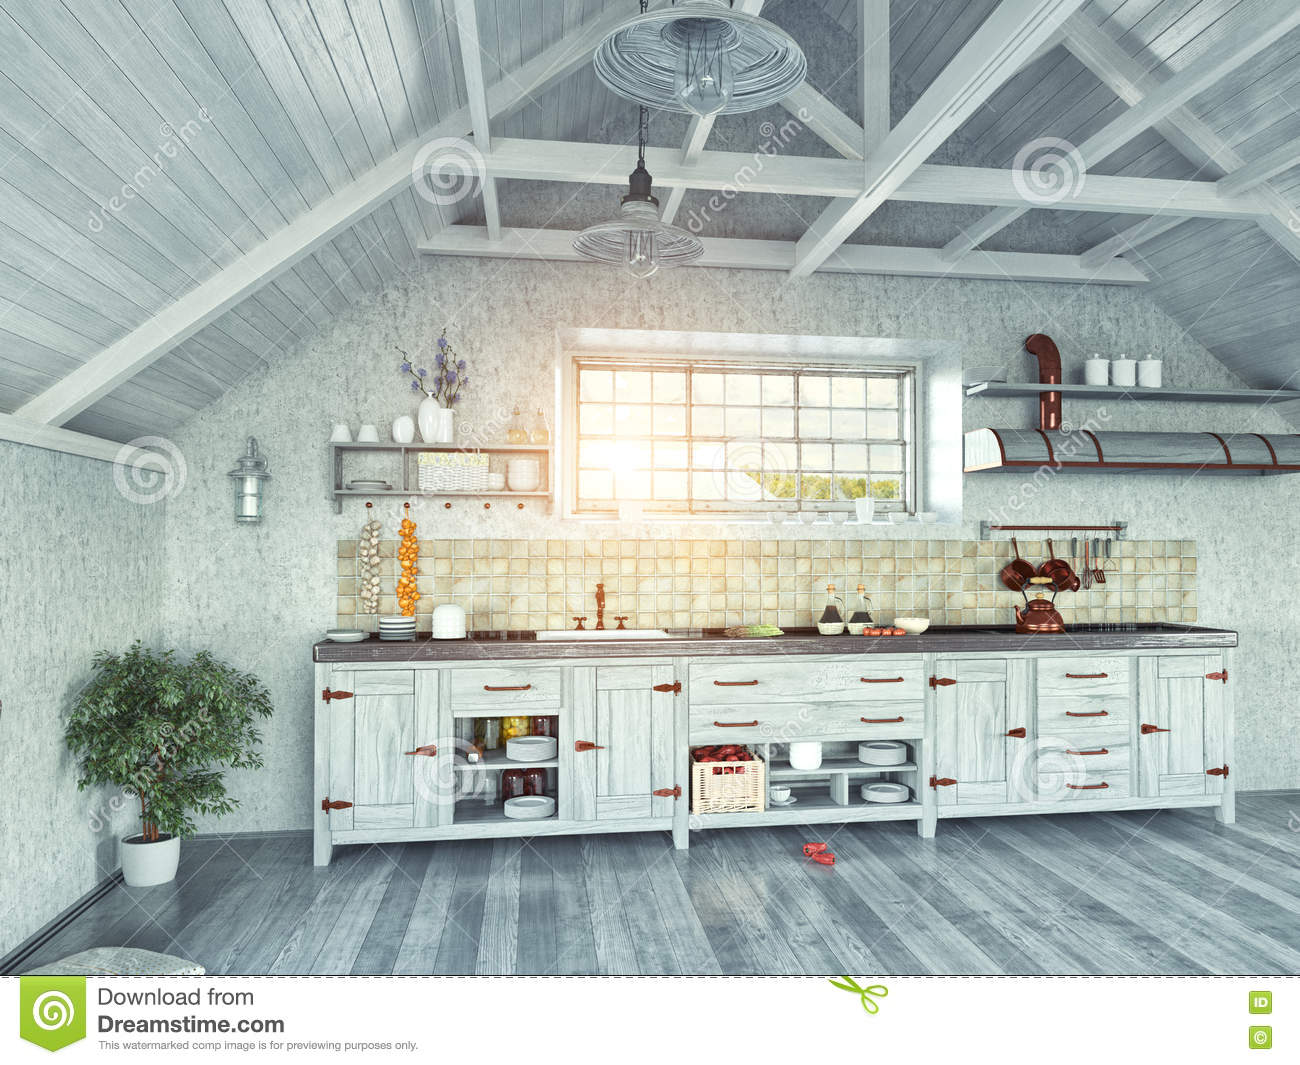 Attic Kitchen Kitchen In The Attic Stock Illustration Image 48773697